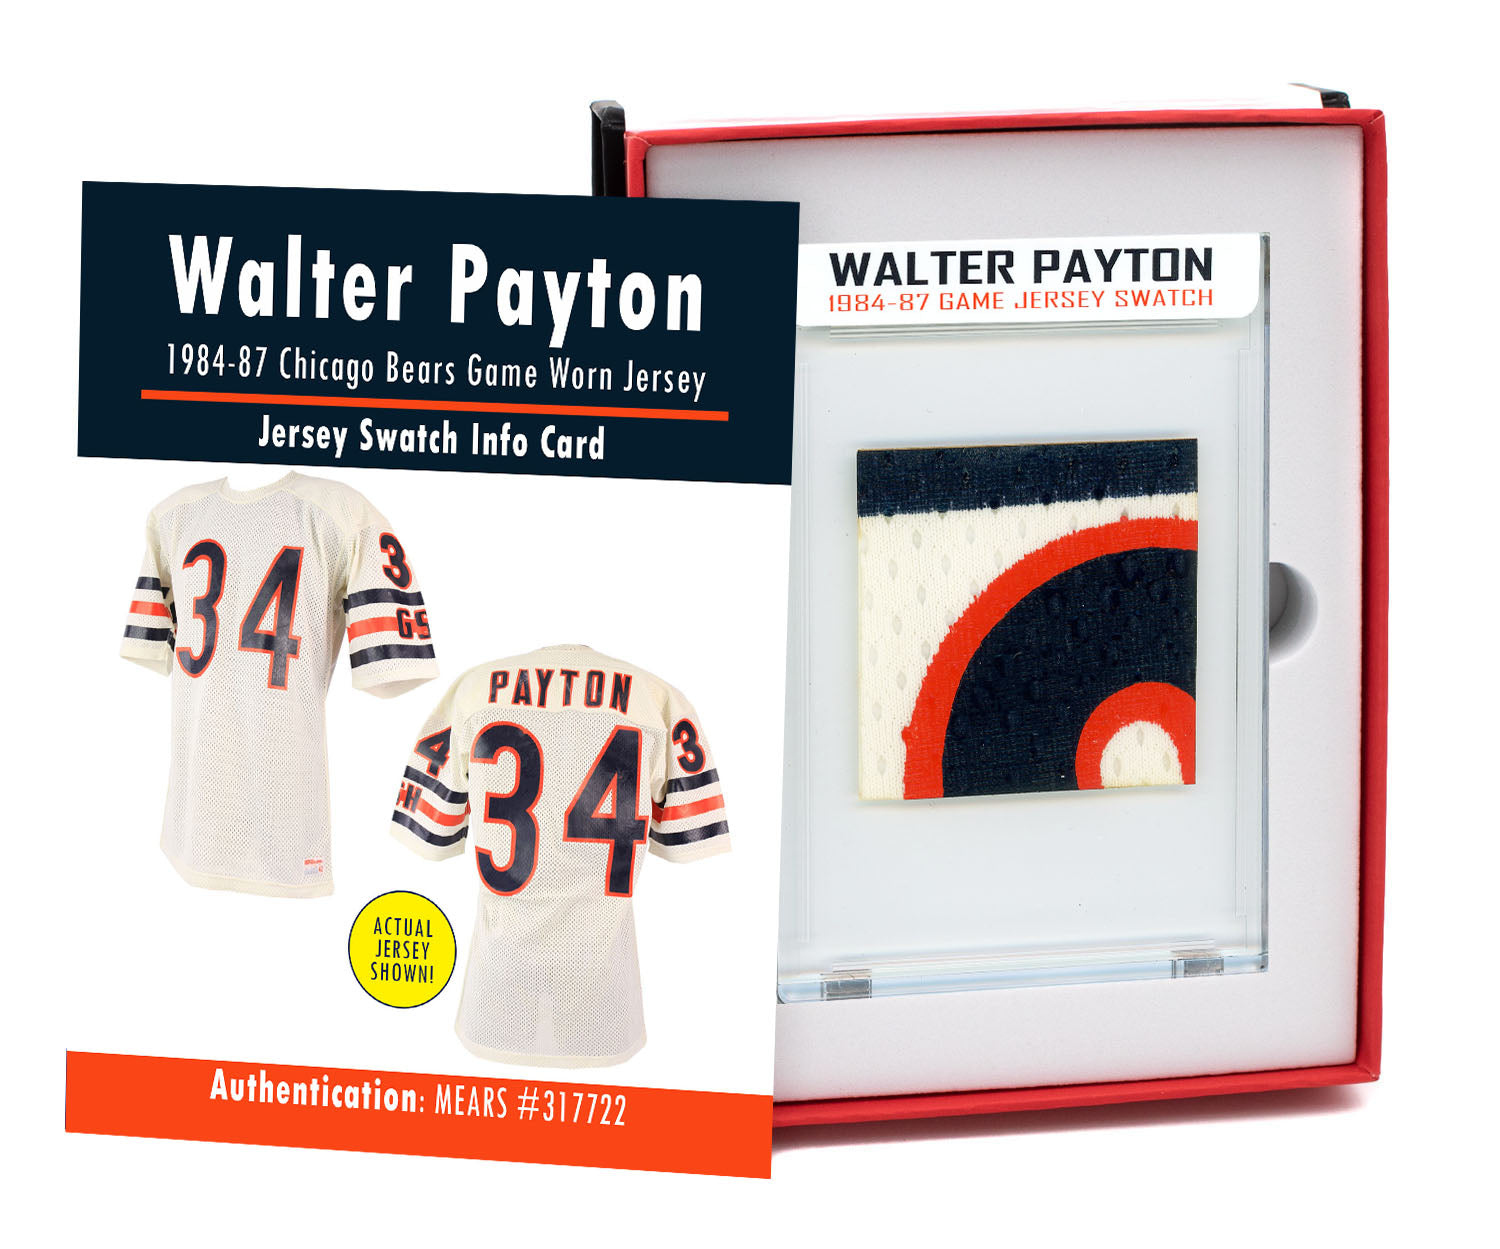 WALTER PAYTON 1984-87 BEARS GAME WORN JERSEY MYSTERY SEALED SWATCH BOX!